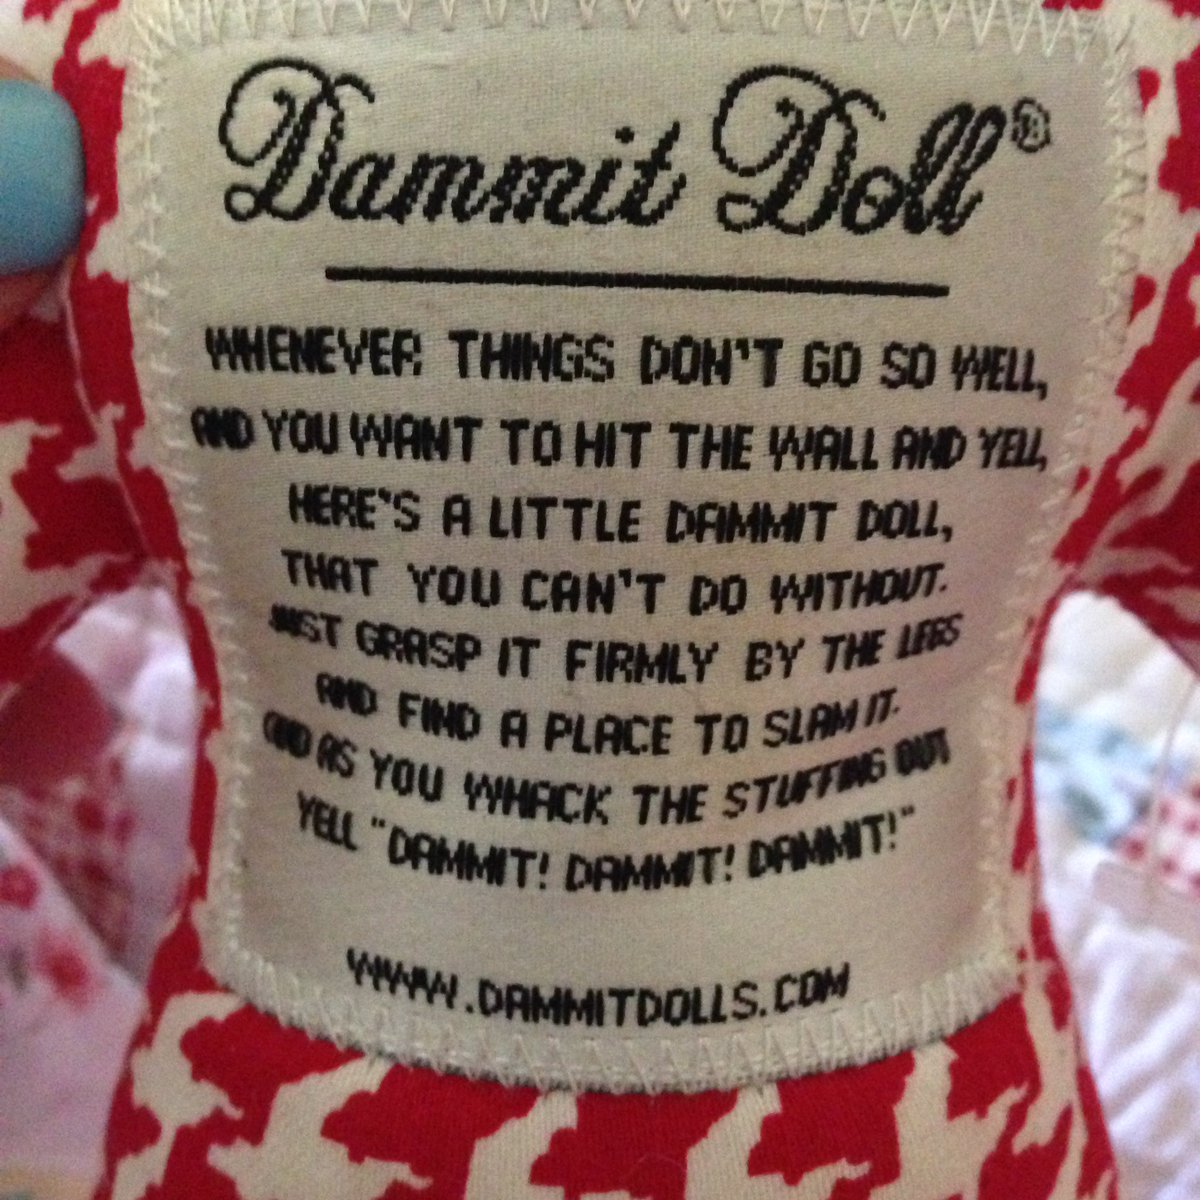 graphic about Dammit Doll Printable Pattern titled dammitdoll hashtag upon Twitter